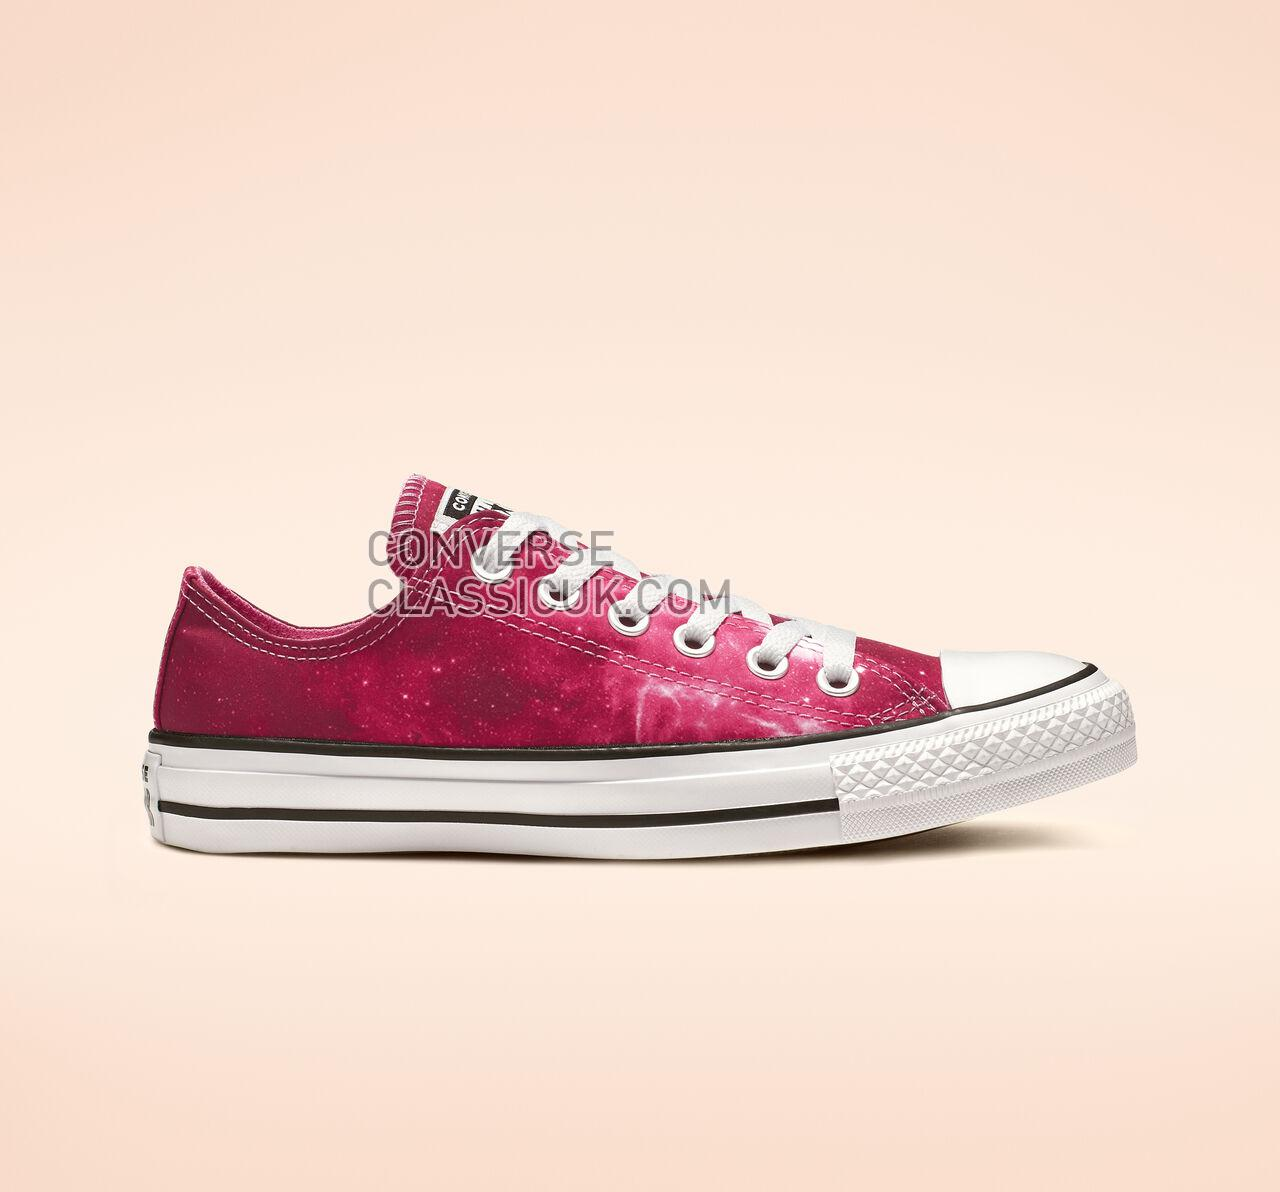 Converse Chuck Taylor All Star Miss Galaxy Low Top Womens 565210F Dark Burgundy/Mod Pink/White Shoes